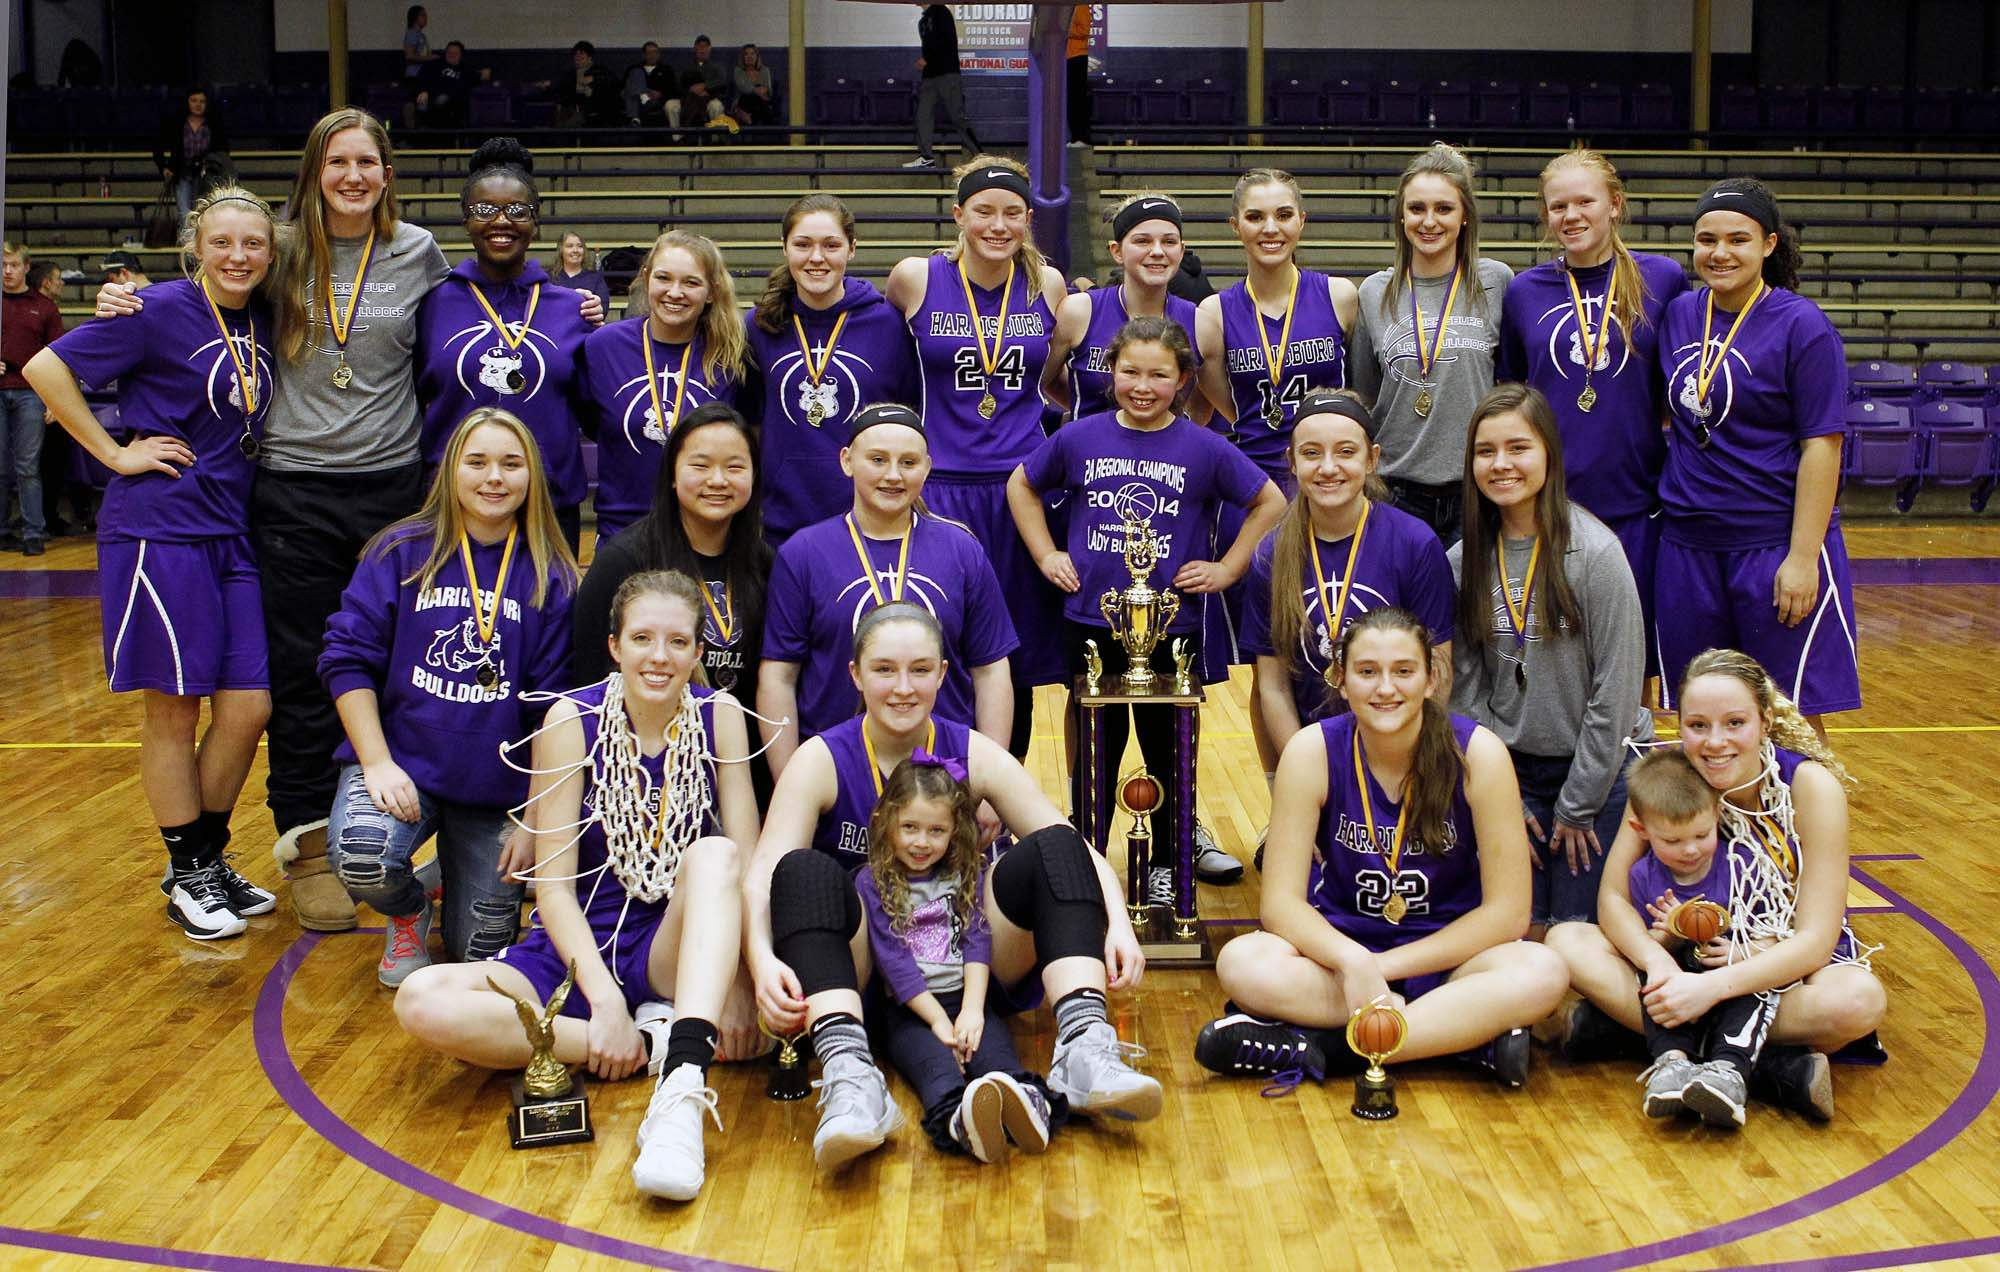 Members of the Harrisburg girls' basketball team pose with the championship trophy of the Lady Eagle Mid-Winter Classic after knocking off Mt. Carmel in the title game Saturday night.